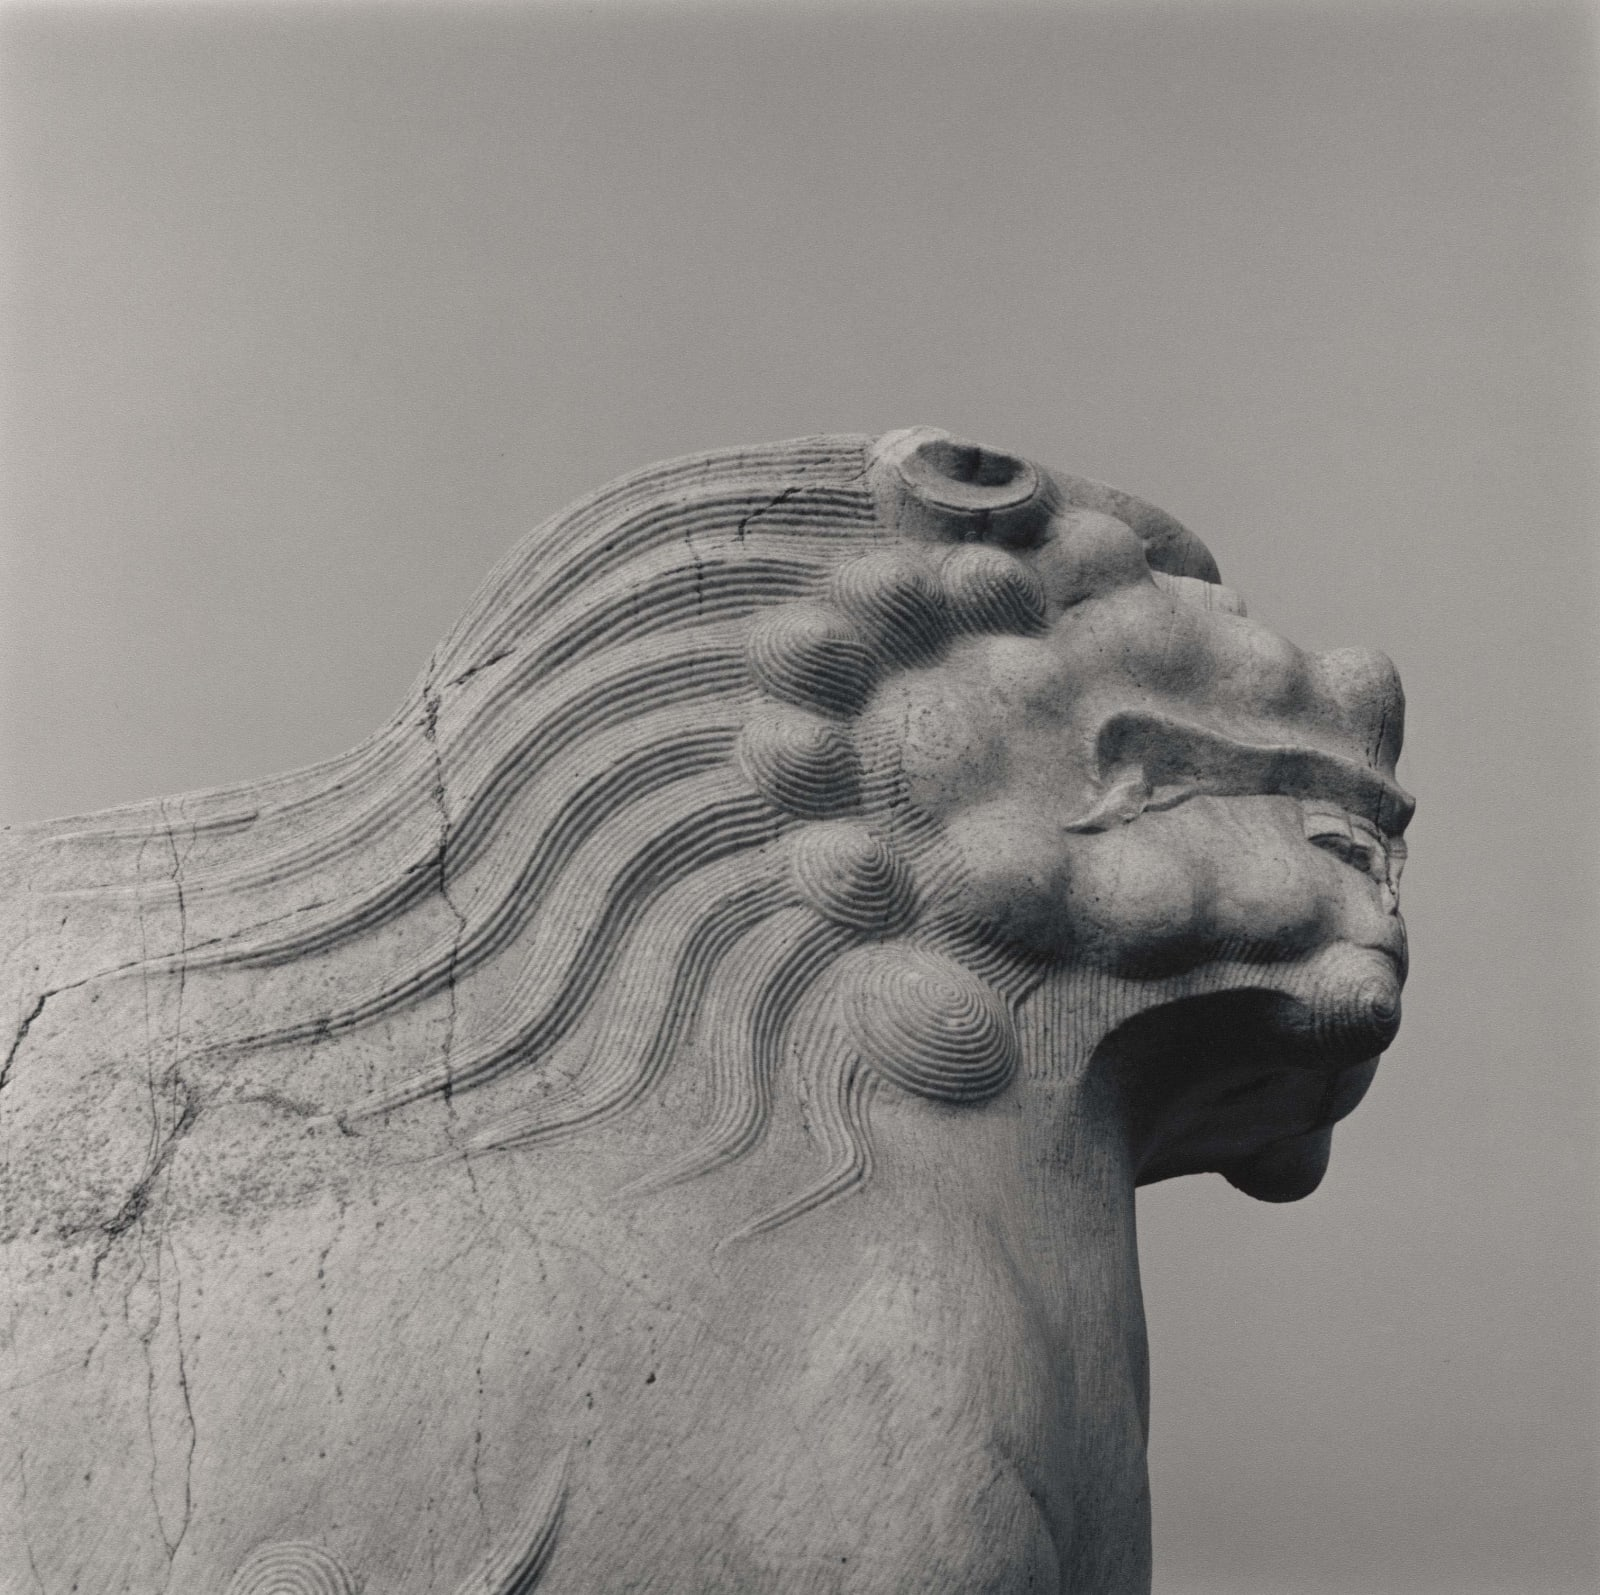 Lynn Davis, Sacred Way of Xiaoling, Eastern Quing Tombs, outside Beijing, China, 2001